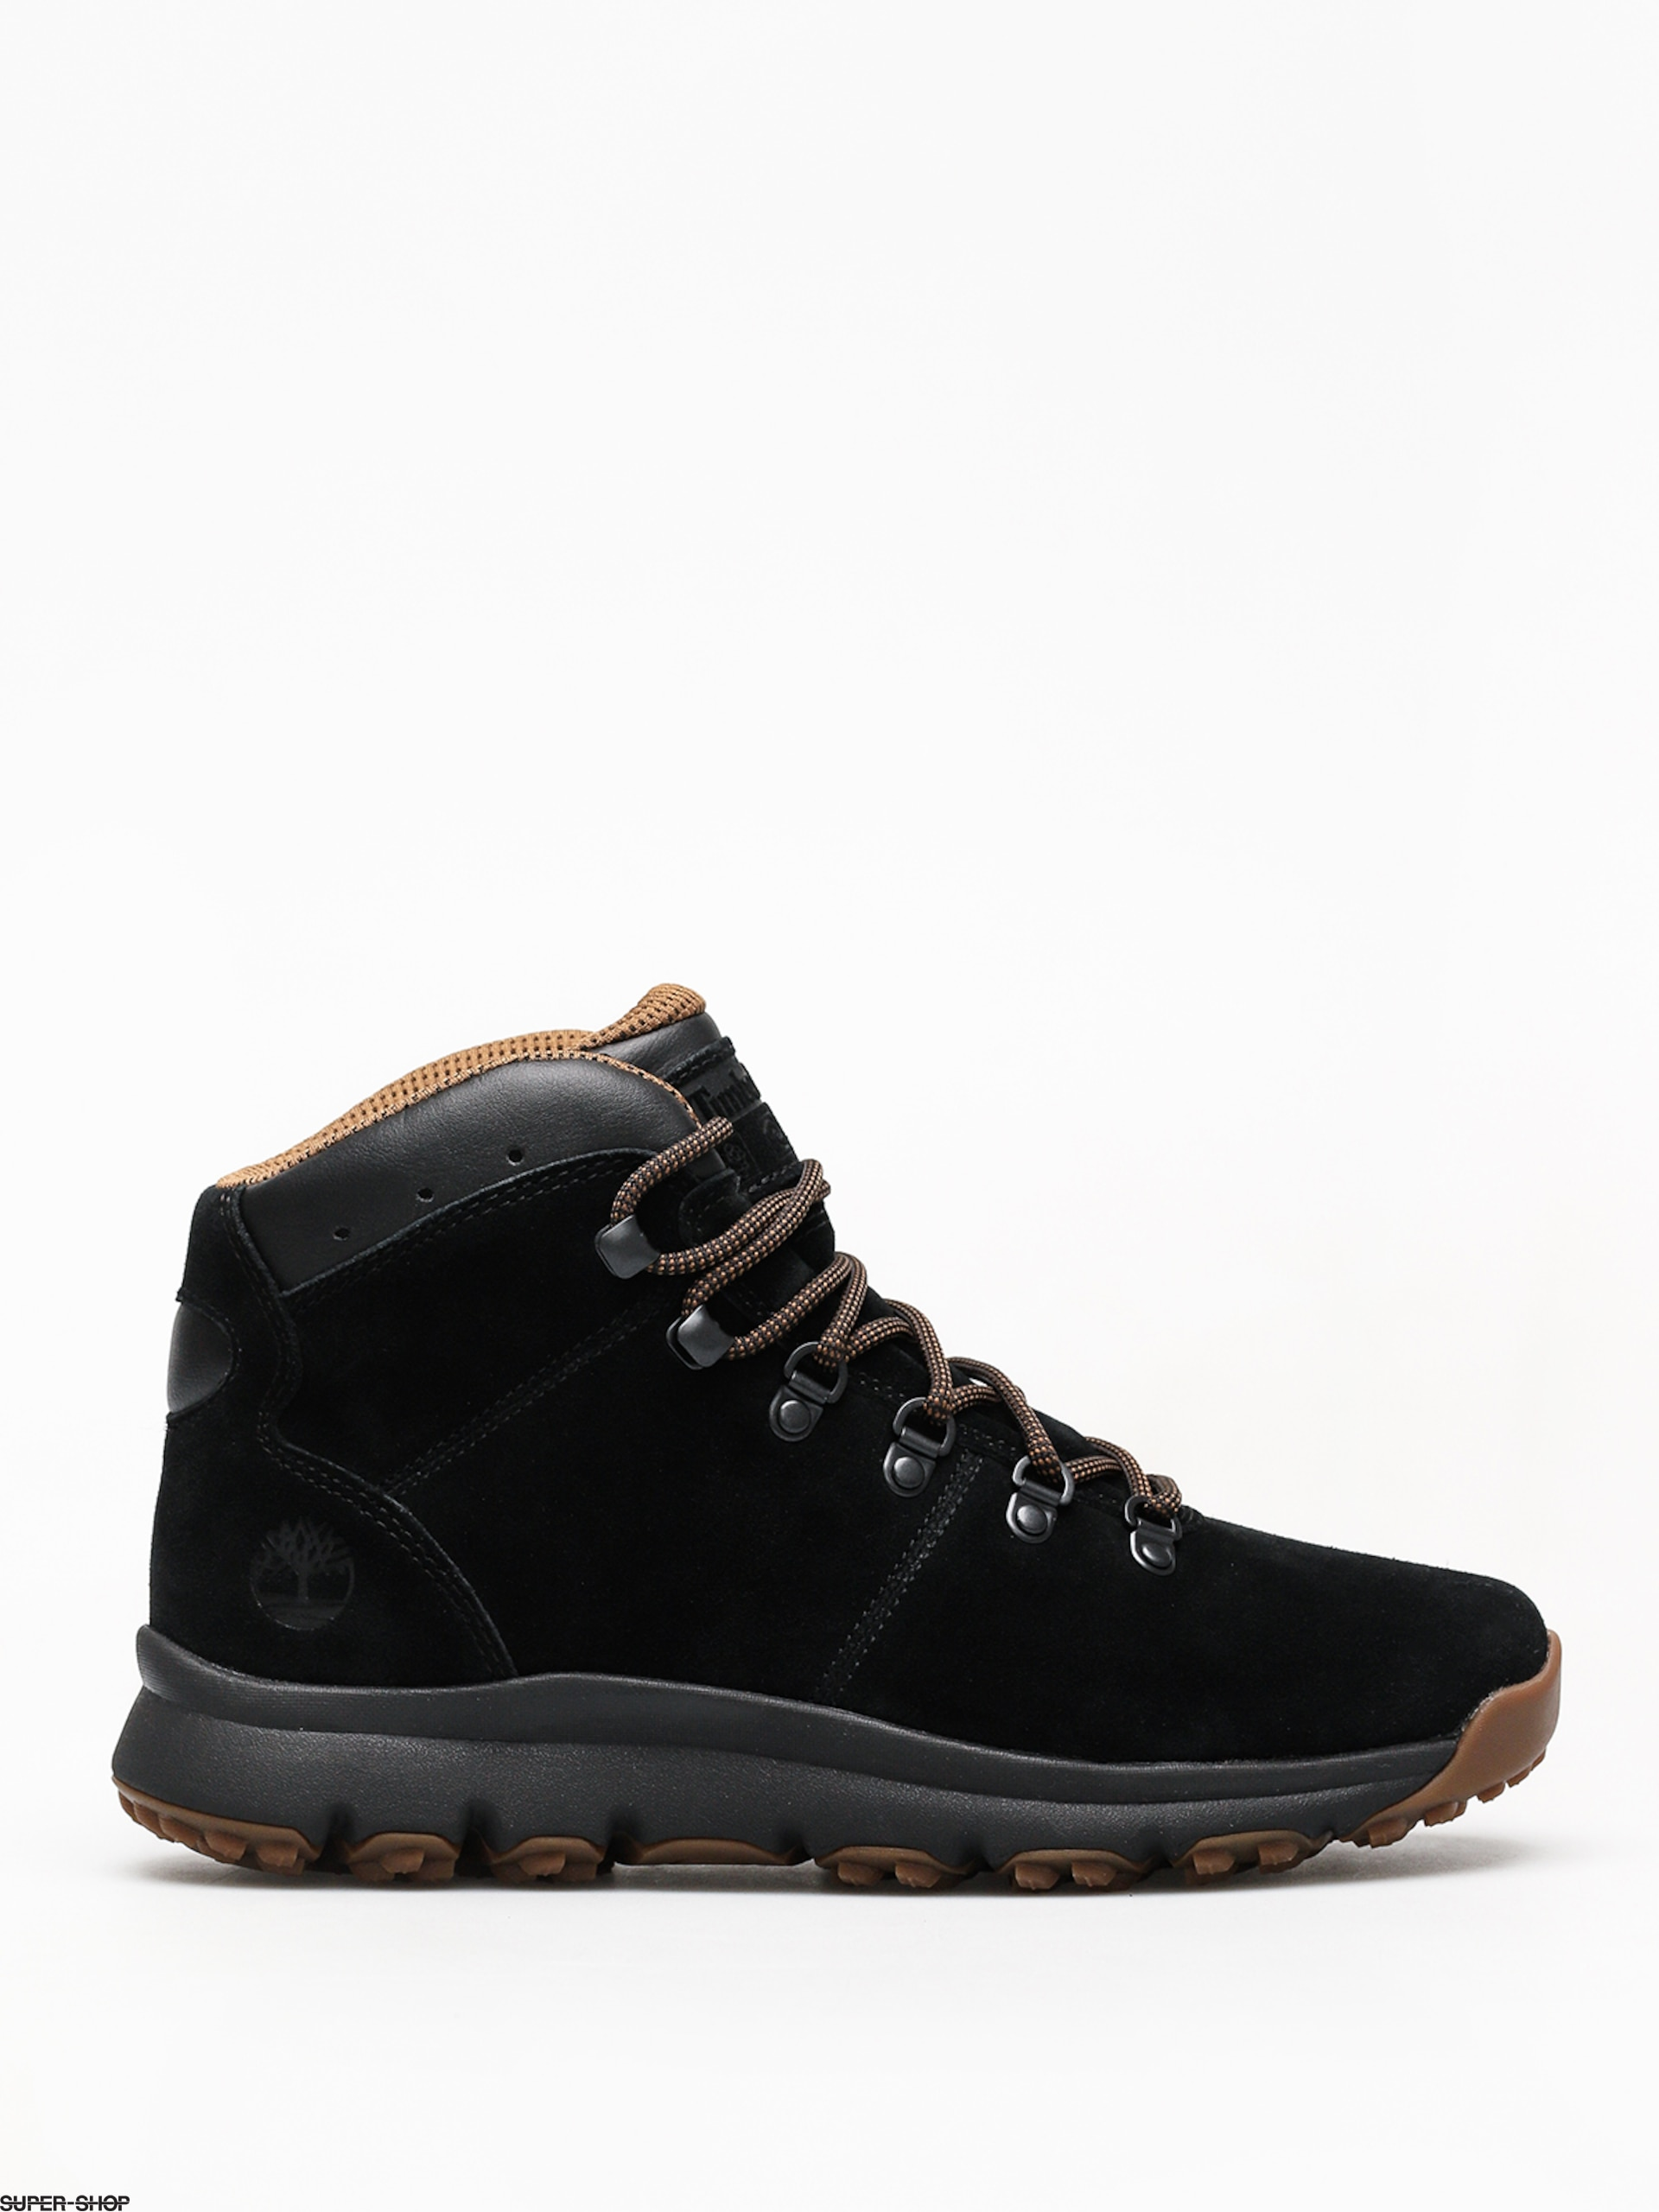 guión Huerta Ahora  timberland shoes Online Shopping for Women, Men, Kids Fashion &  Lifestyle|Free Delivery & Returns! -